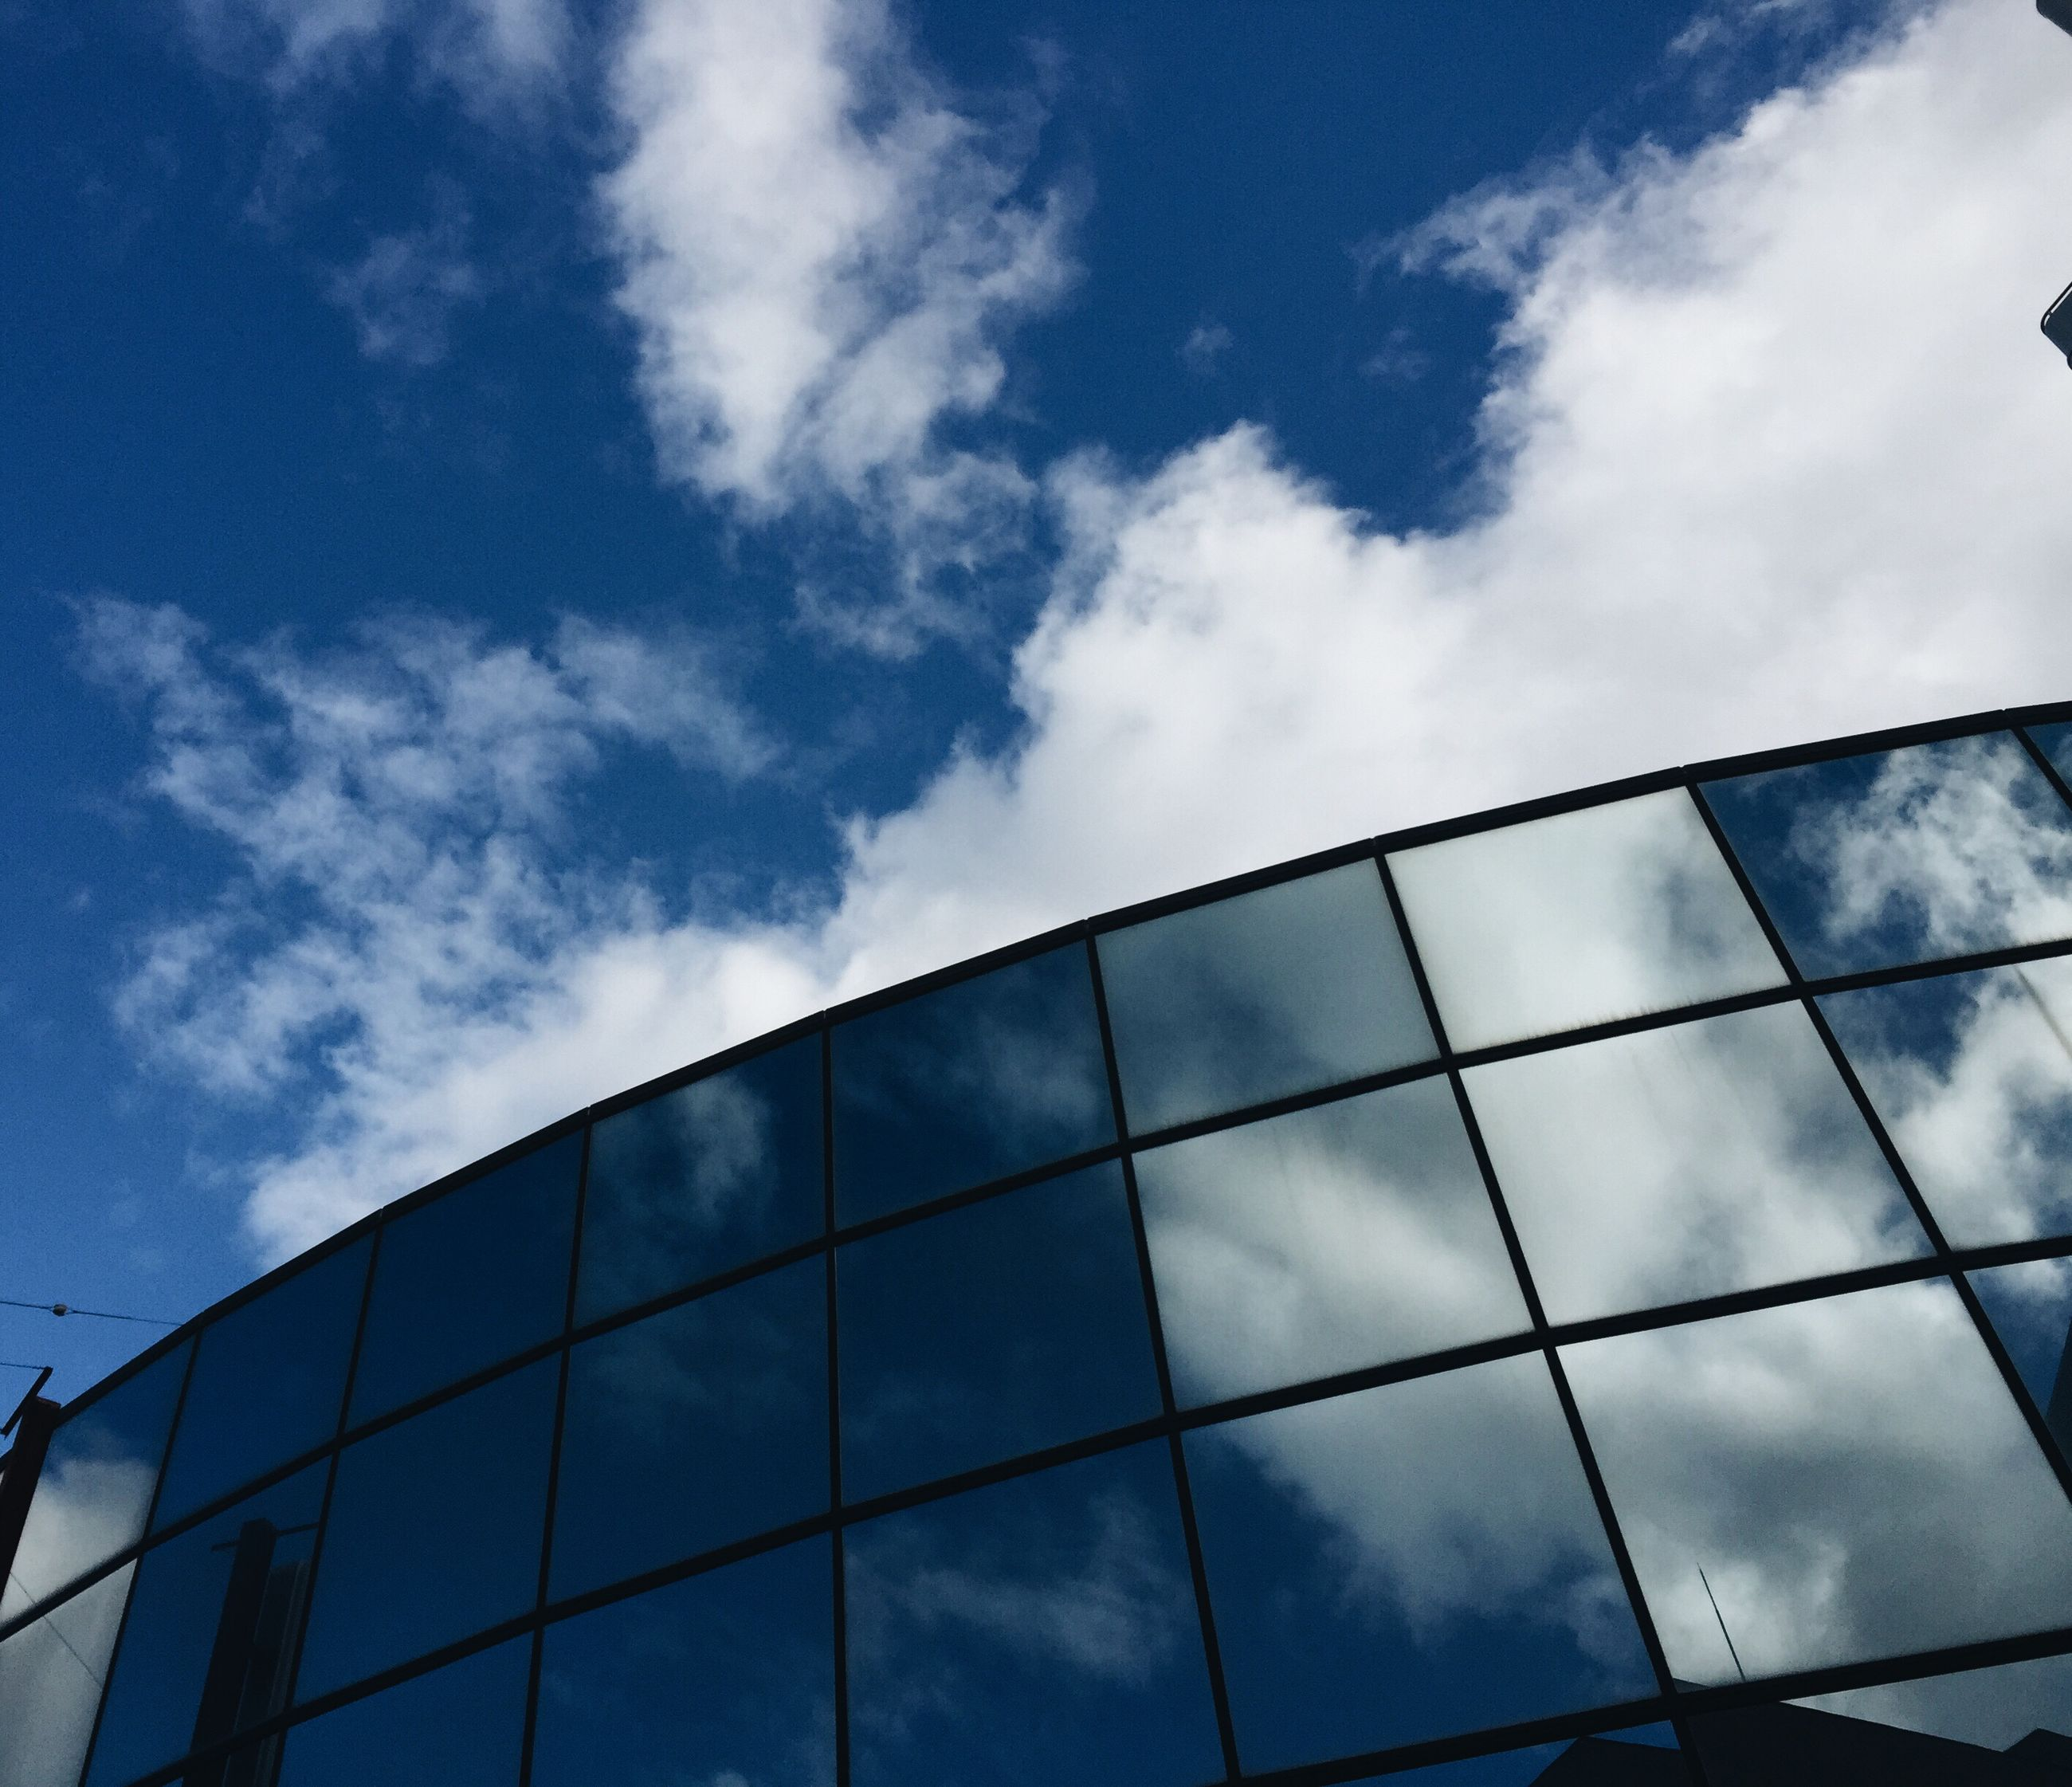 architecture, sky, low angle view, built structure, building exterior, cloud - sky, modern, cloud, blue, office building, glass - material, reflection, city, cloudy, building, day, pattern, no people, outdoors, window